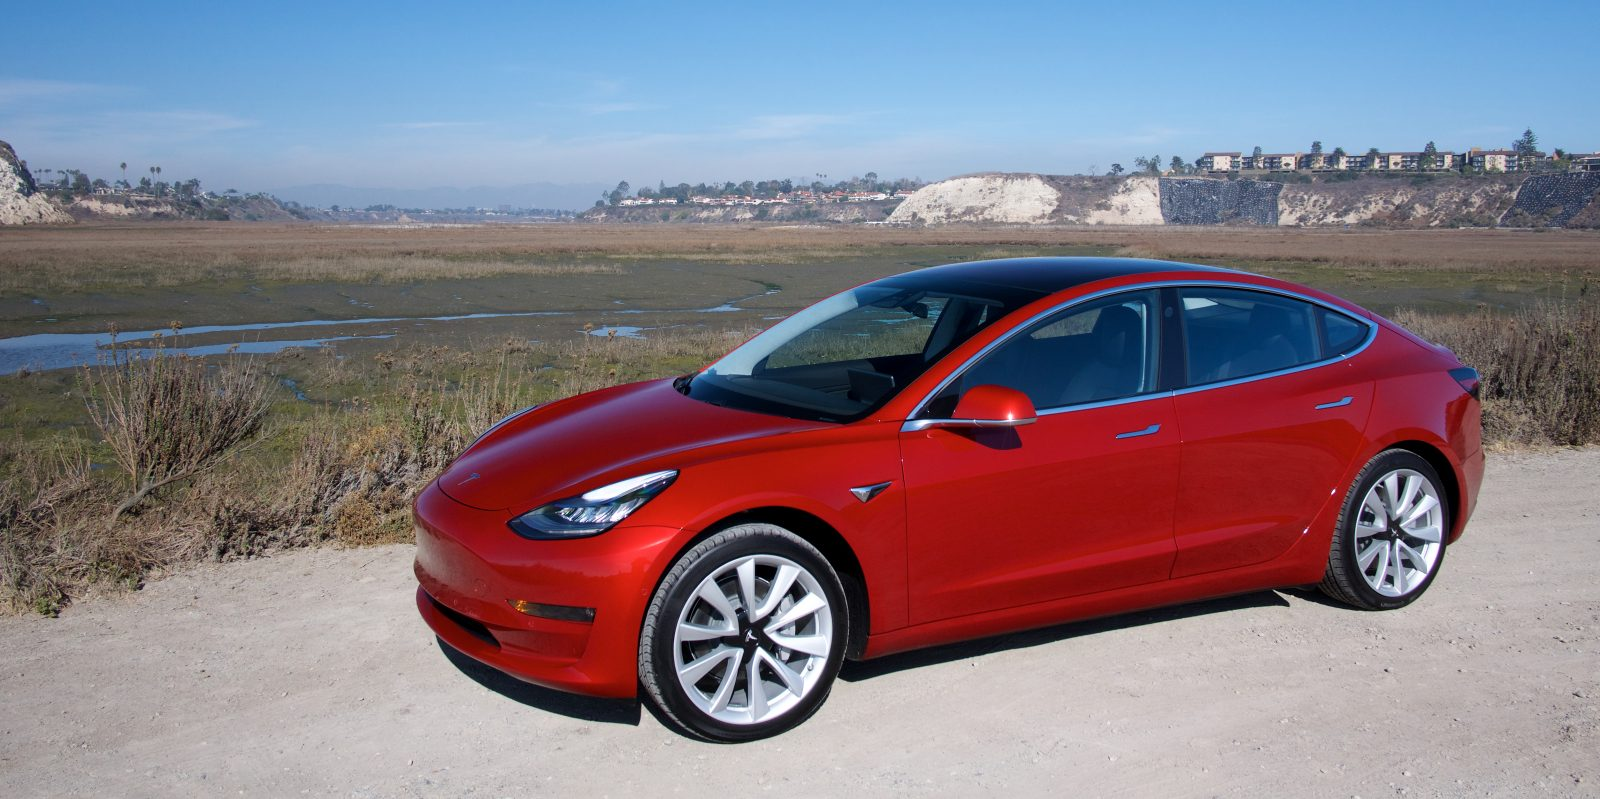 Tesla Model 3 - Your questions answered - Electrek